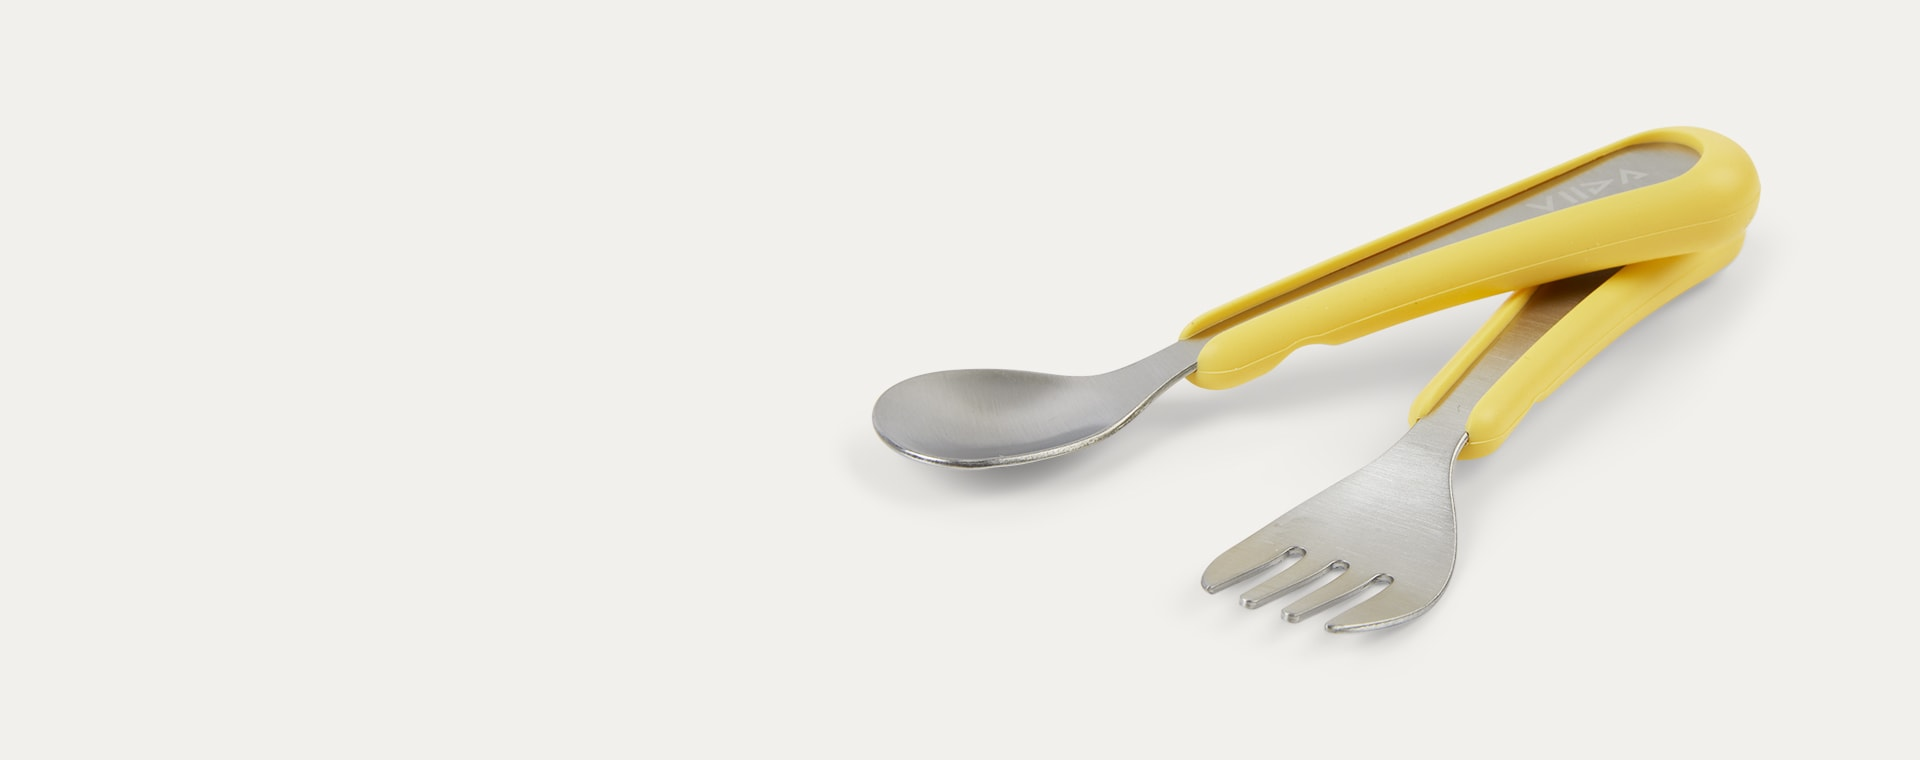 Lemon Yellow VIIDA Soufflé Antibacterial Stainless Steel Fork & Spoon Set